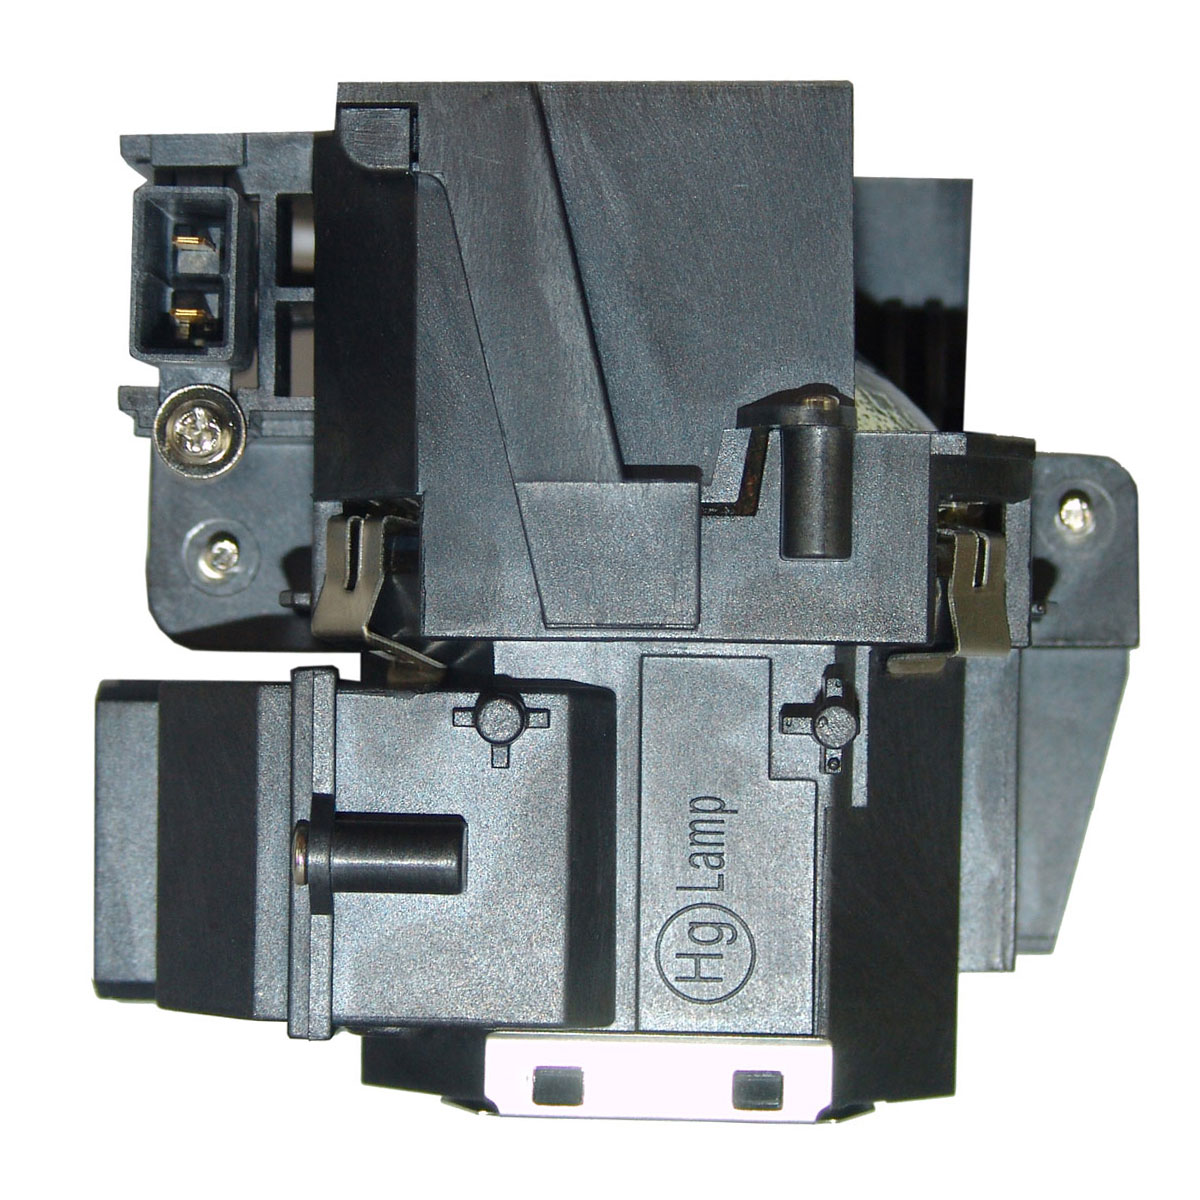 Generic Replacement Projector Lamp for Epson ELPLP49 V13H010L49 for EH-TW2800 ELPHC6100w HC6100 HC8345 V11H291120